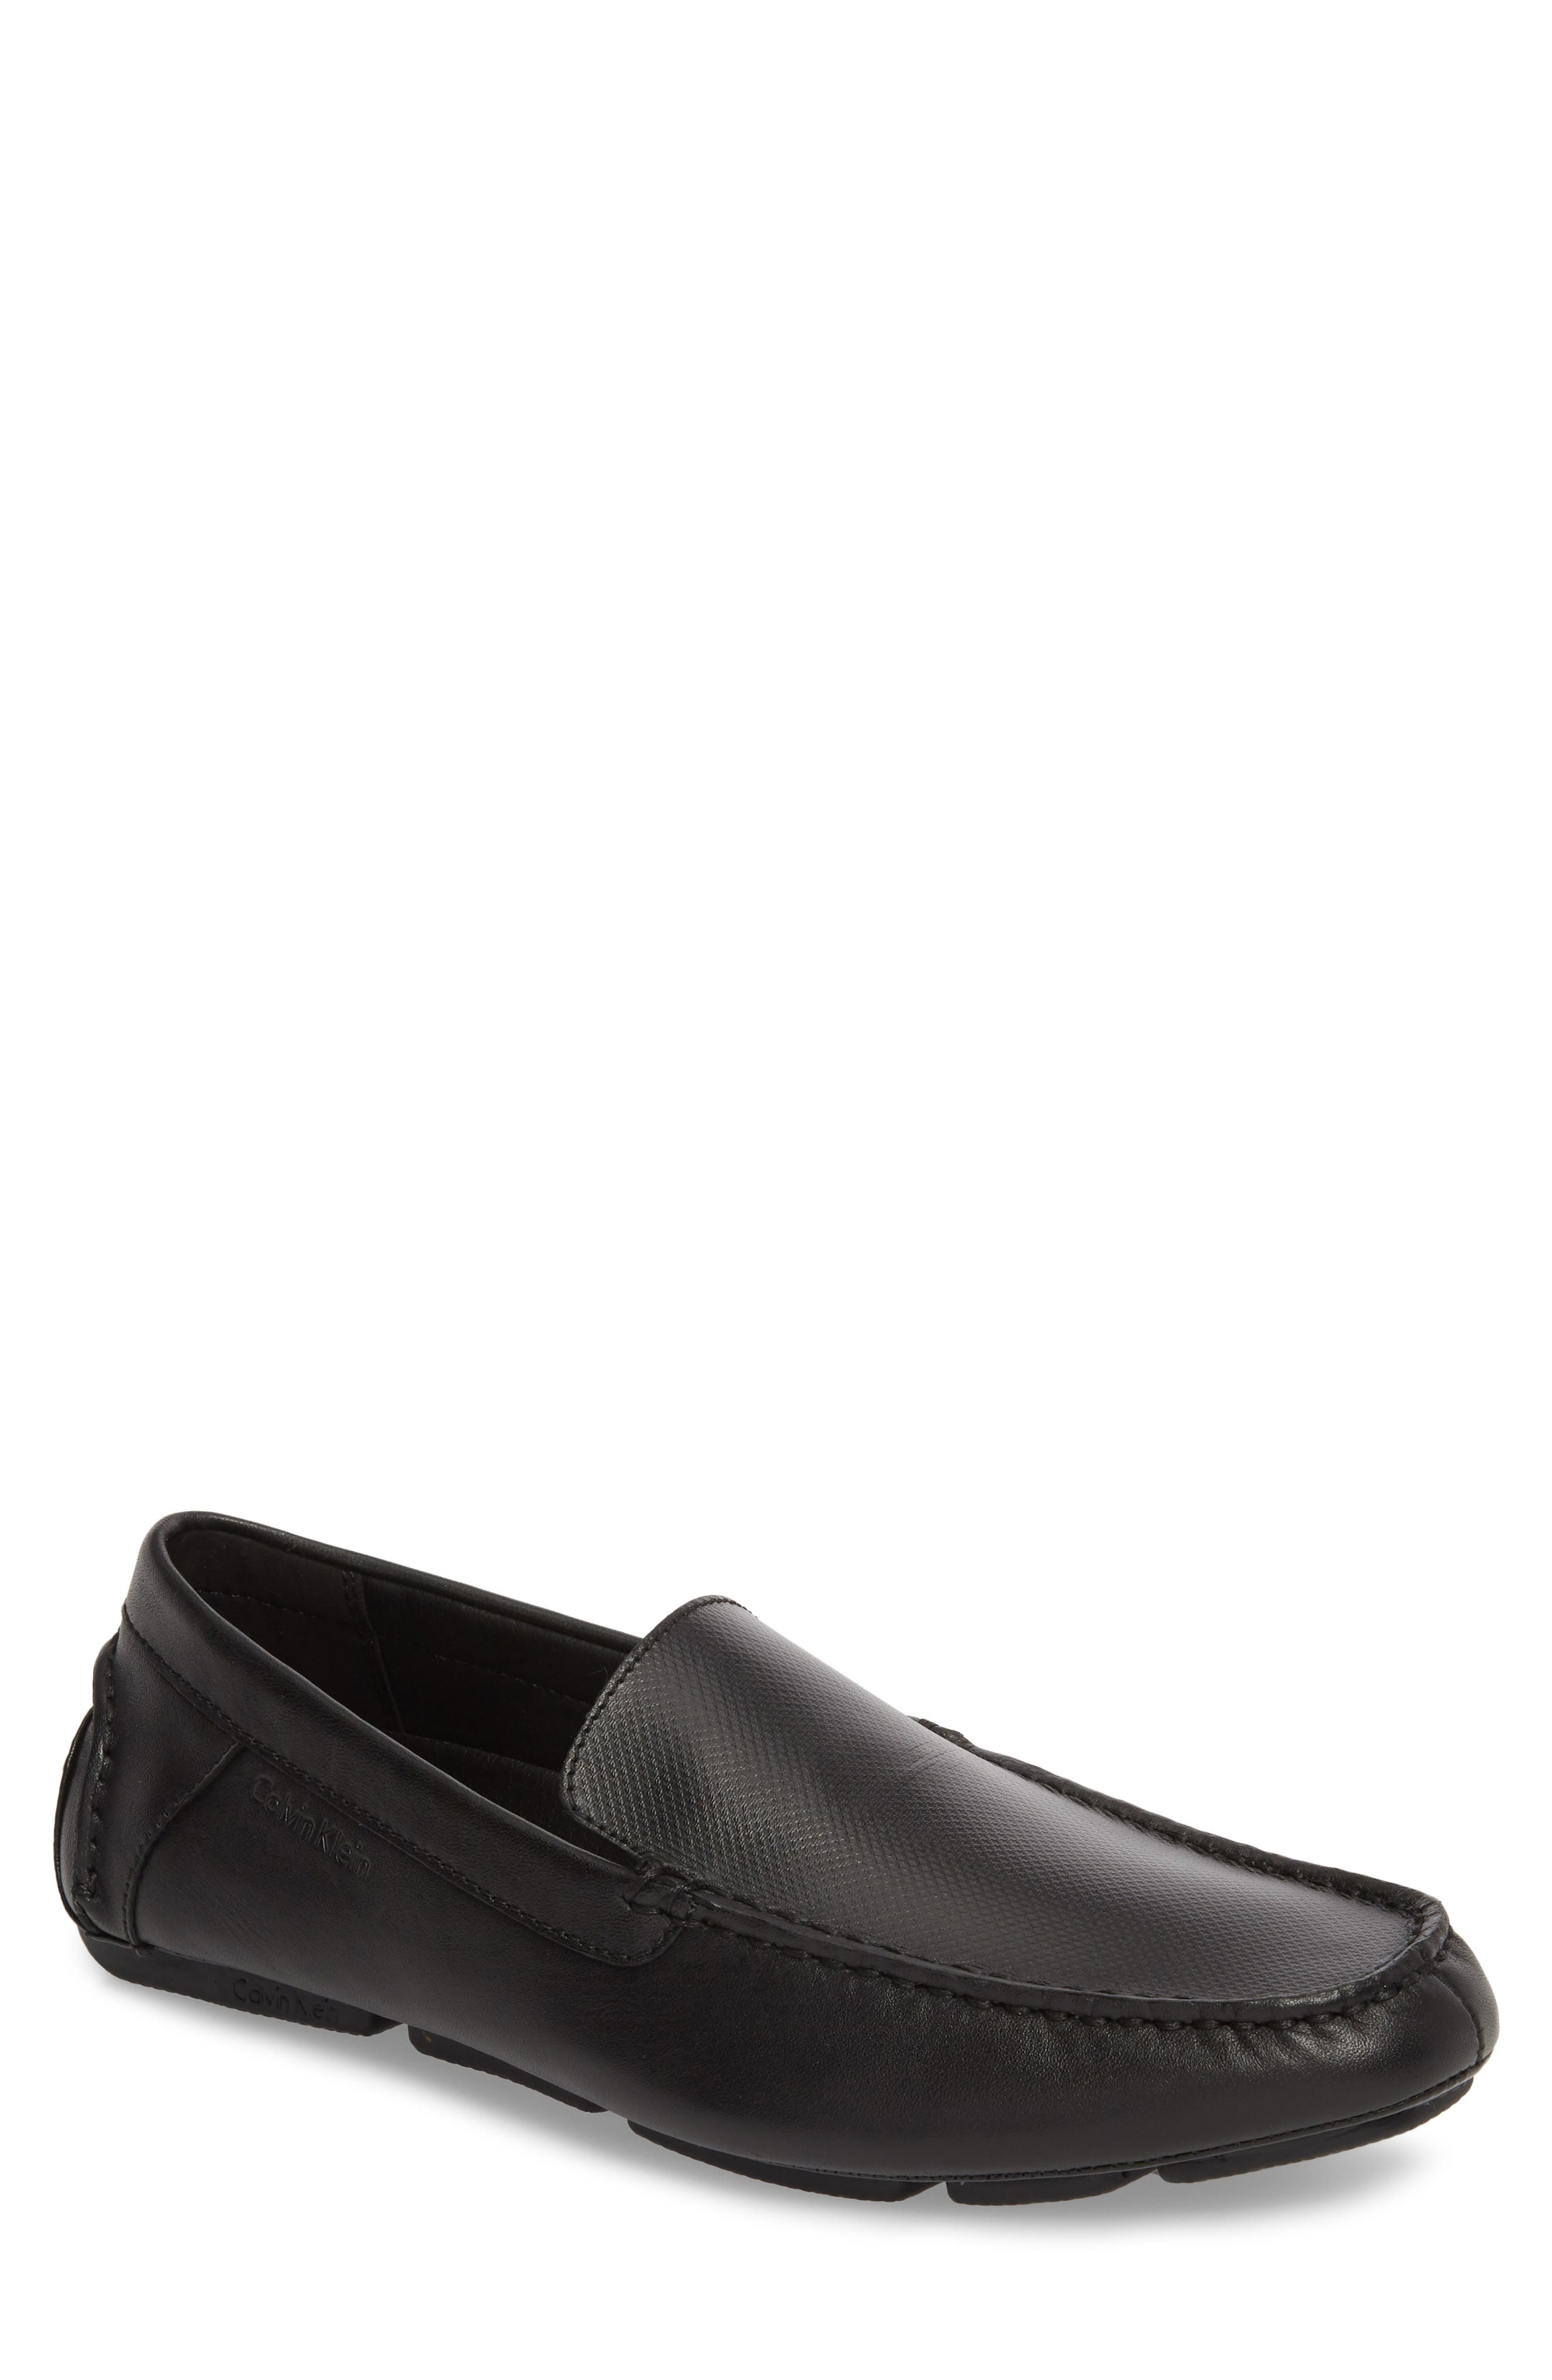 Miguel Textured Driving Loafer,                         Main,                         color, Black Leather